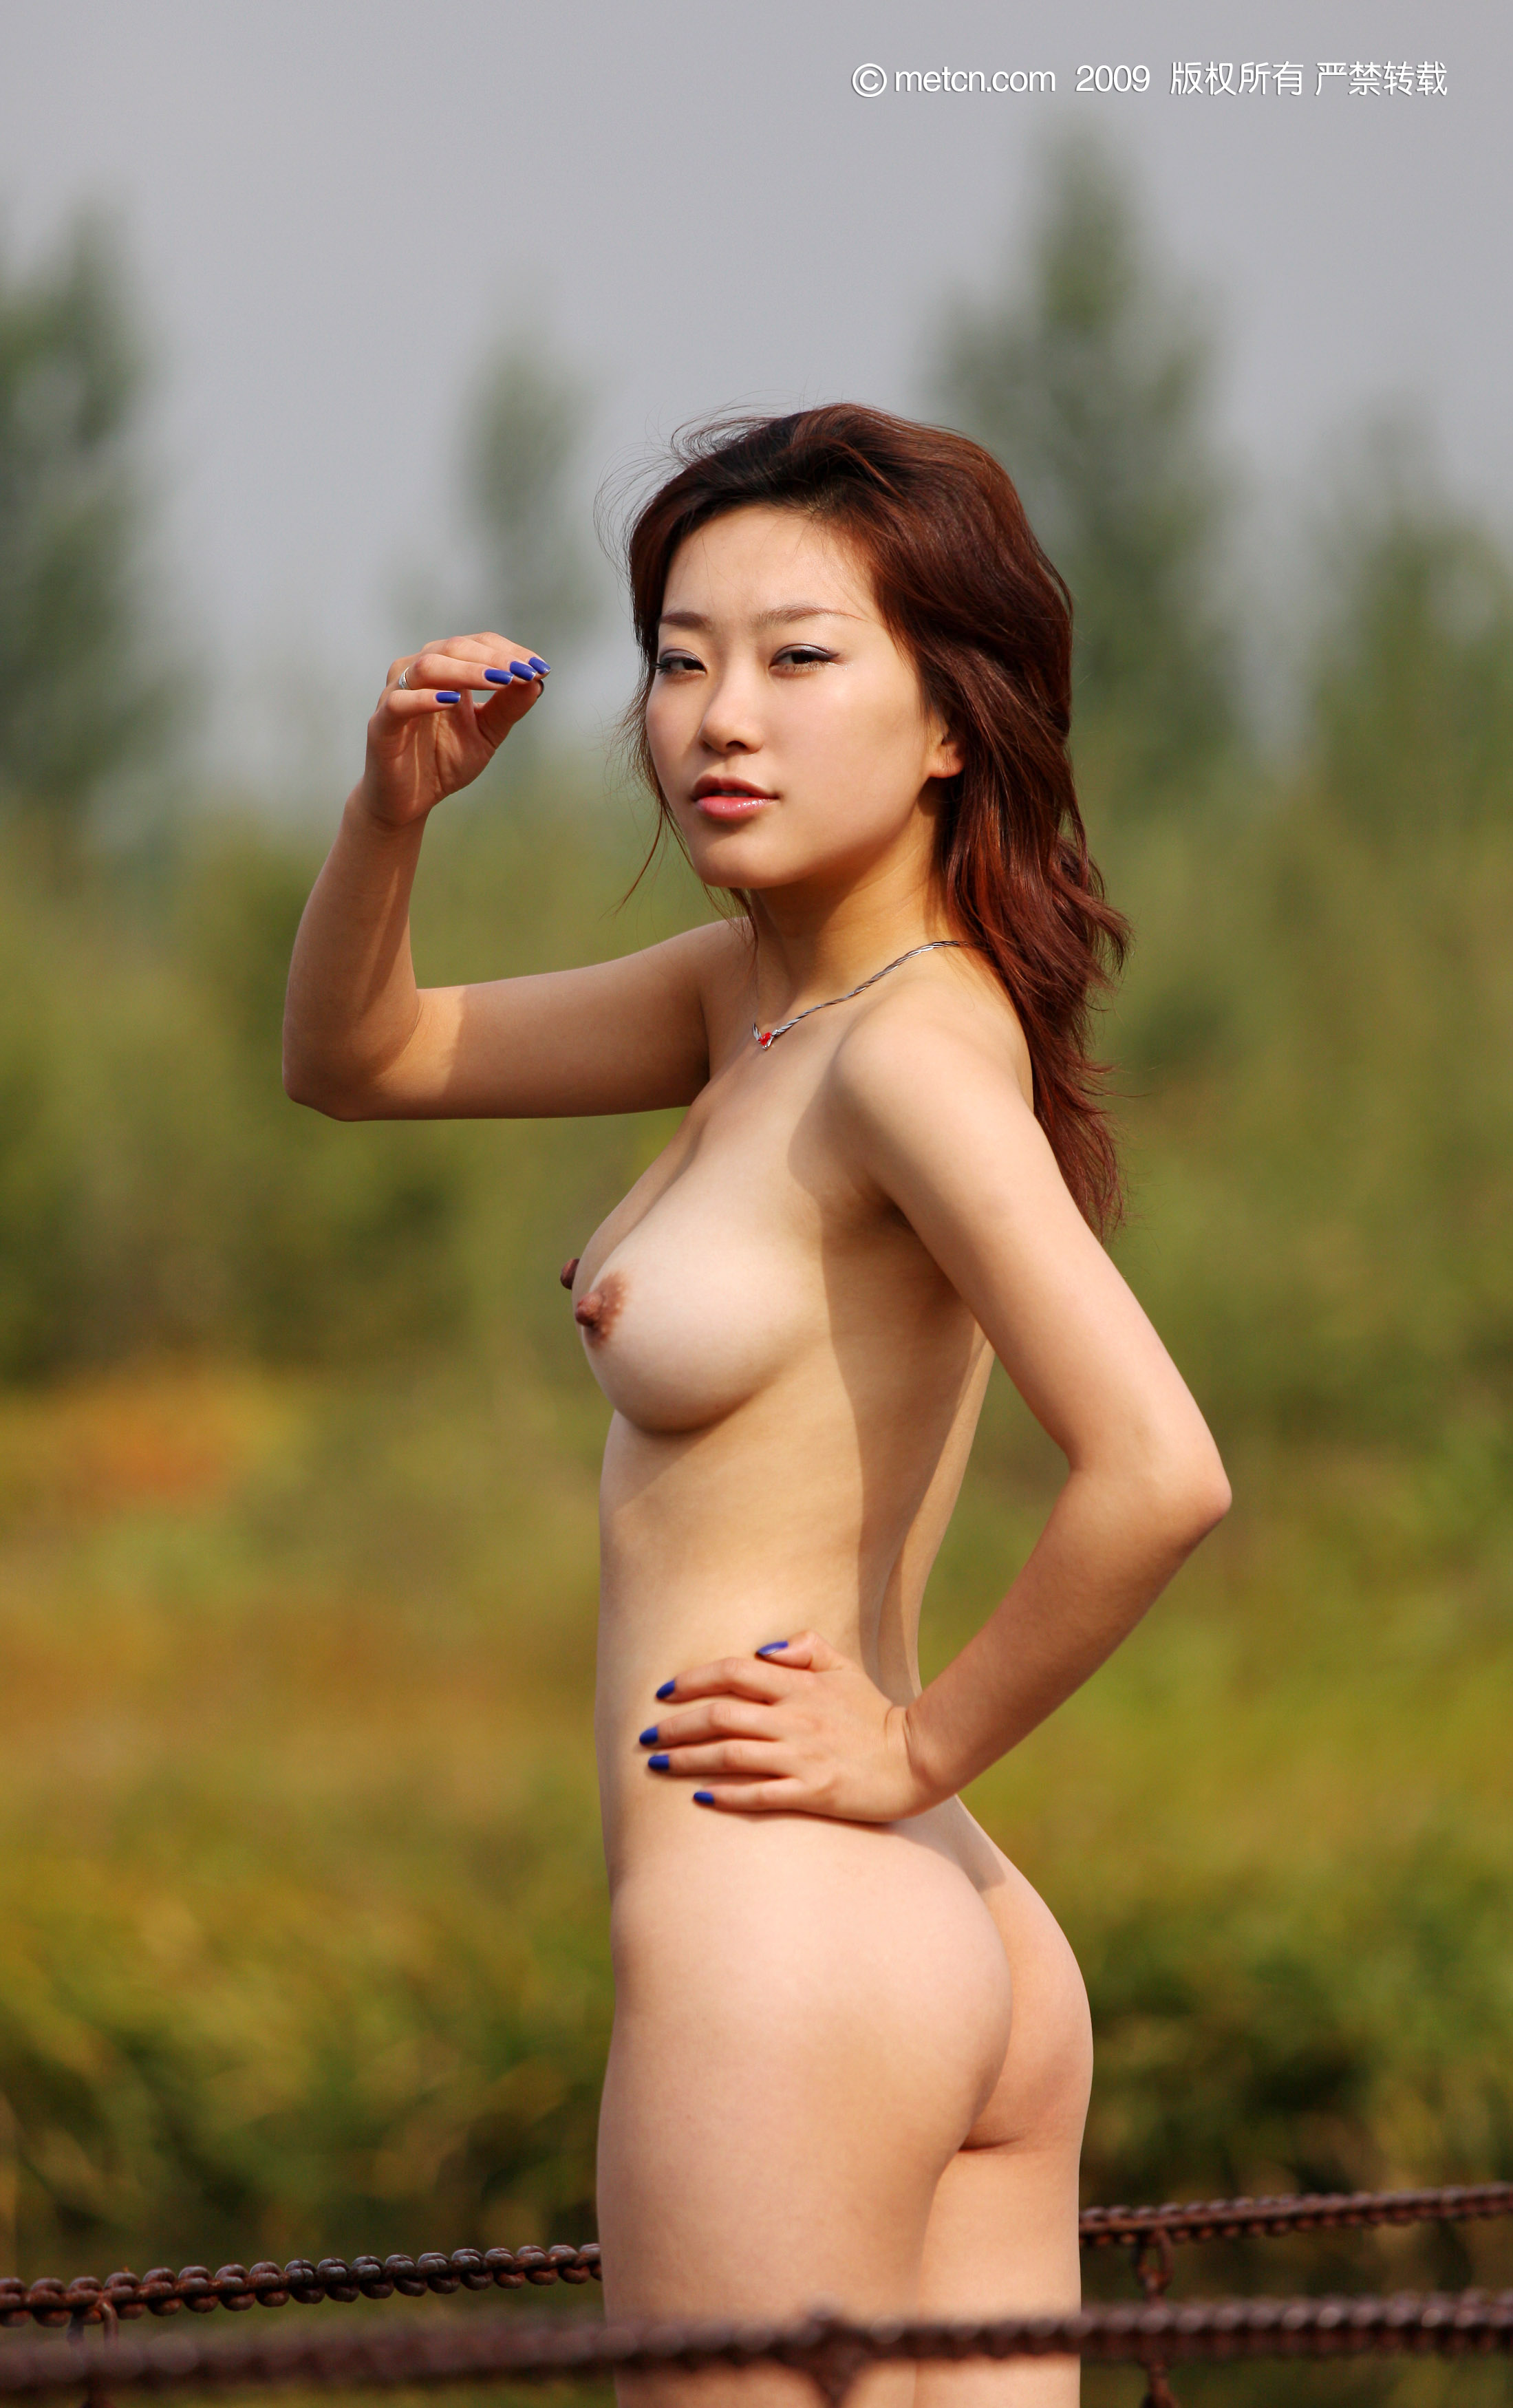 Chinese girls nude model